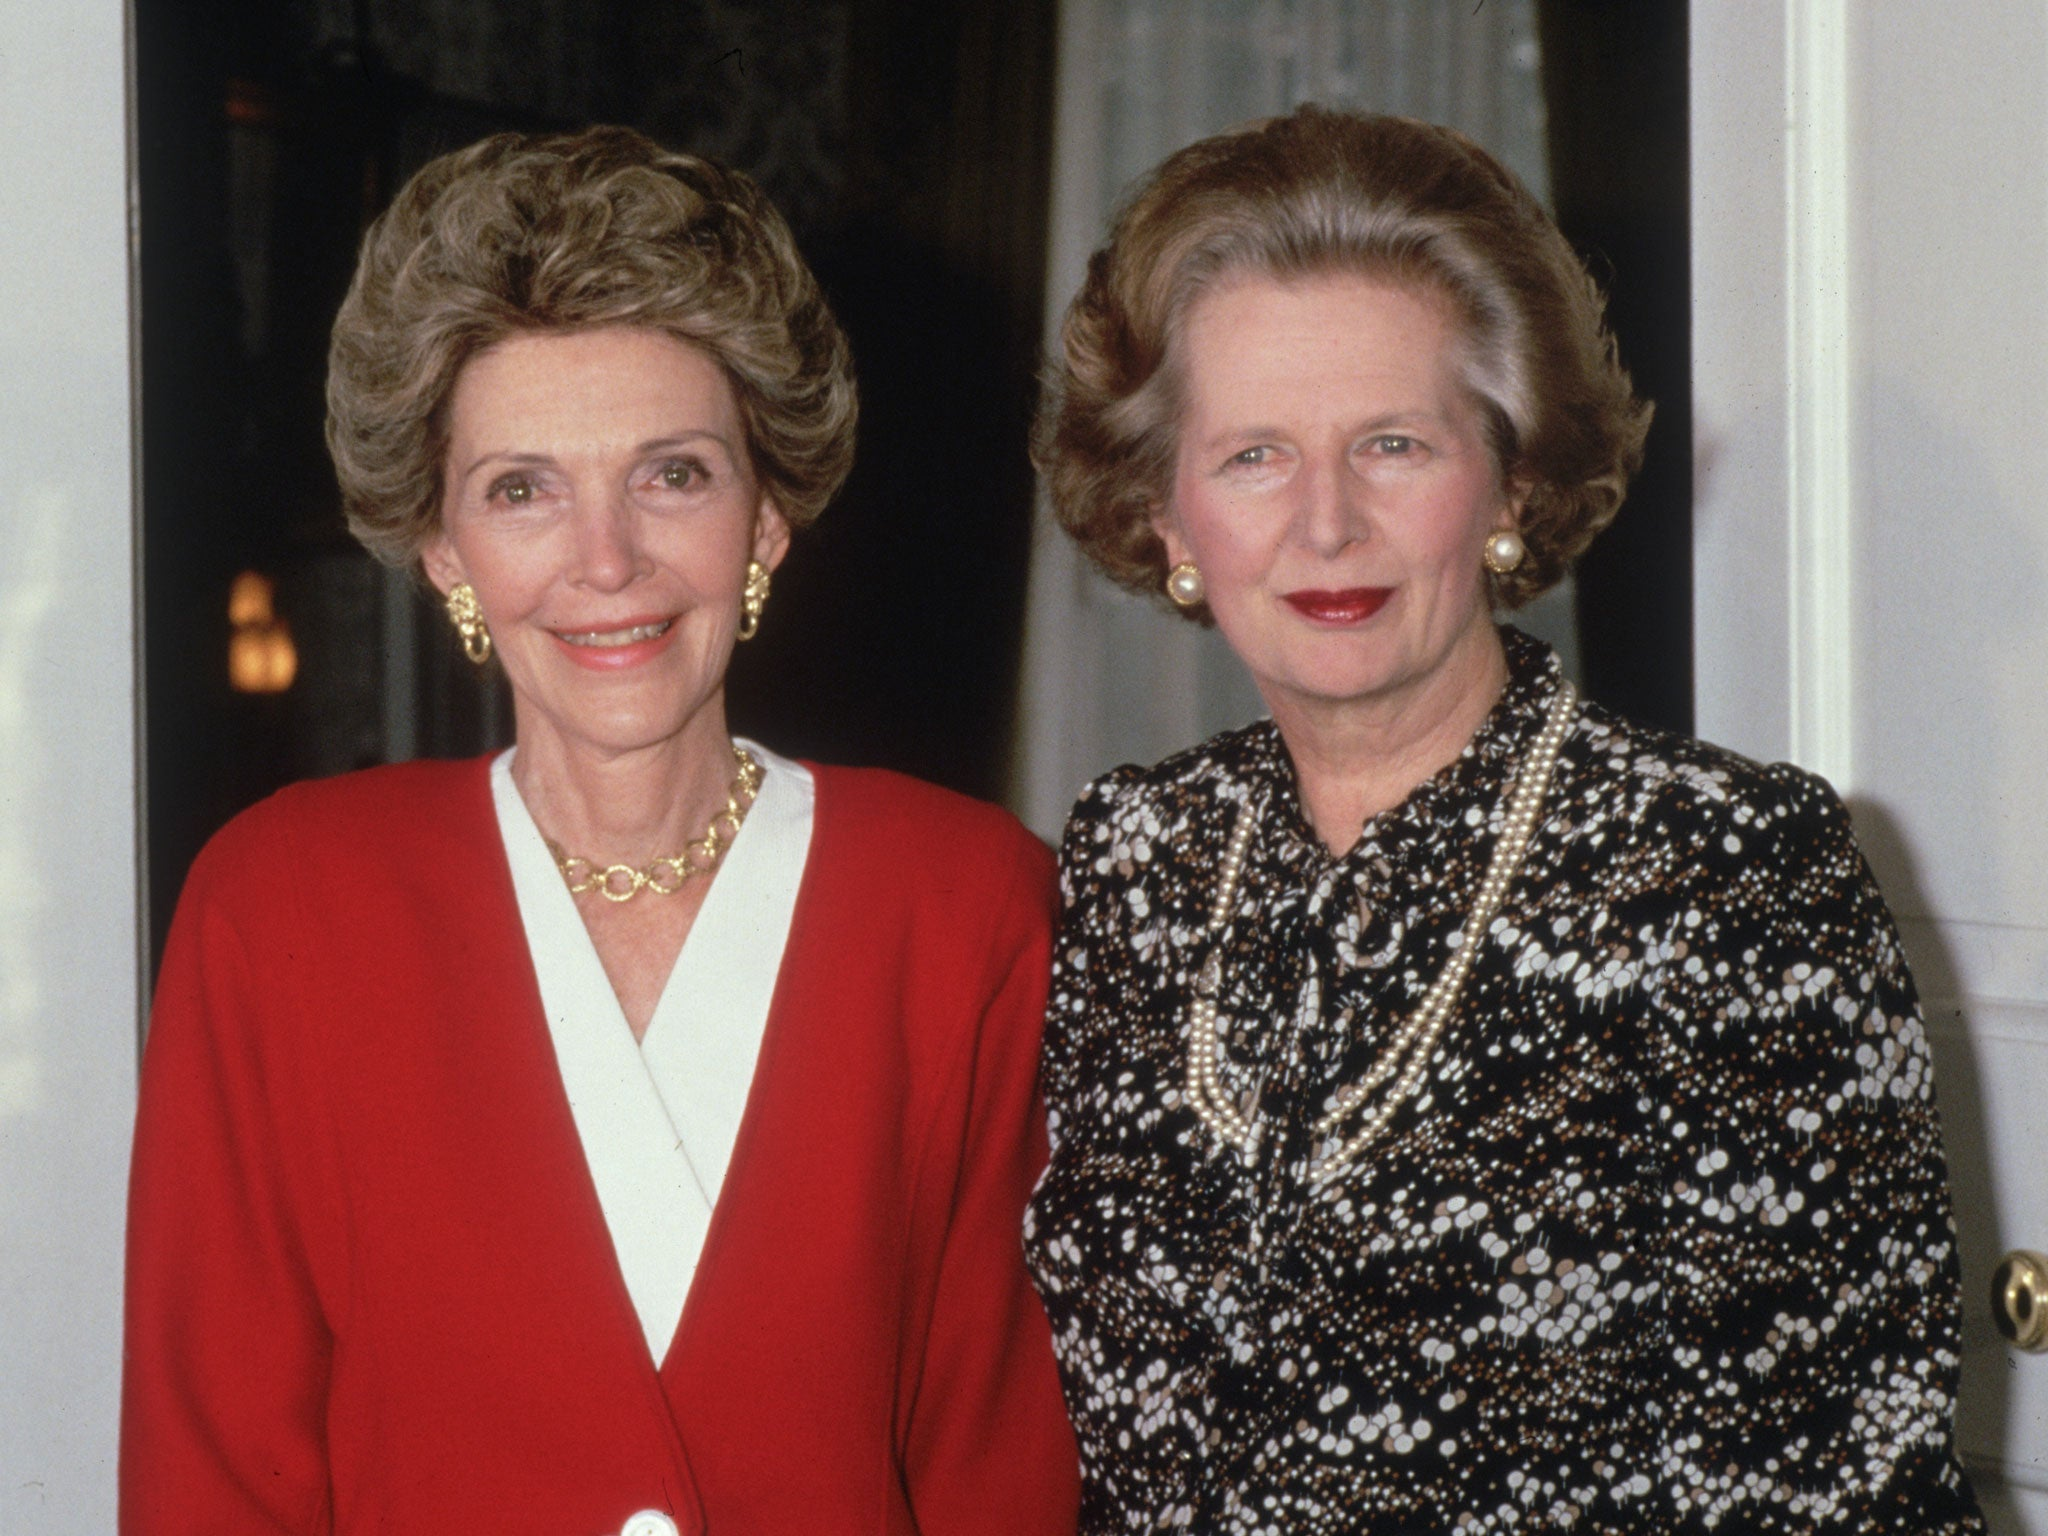 The Margaret Thatcher look from the pearls to the handbag